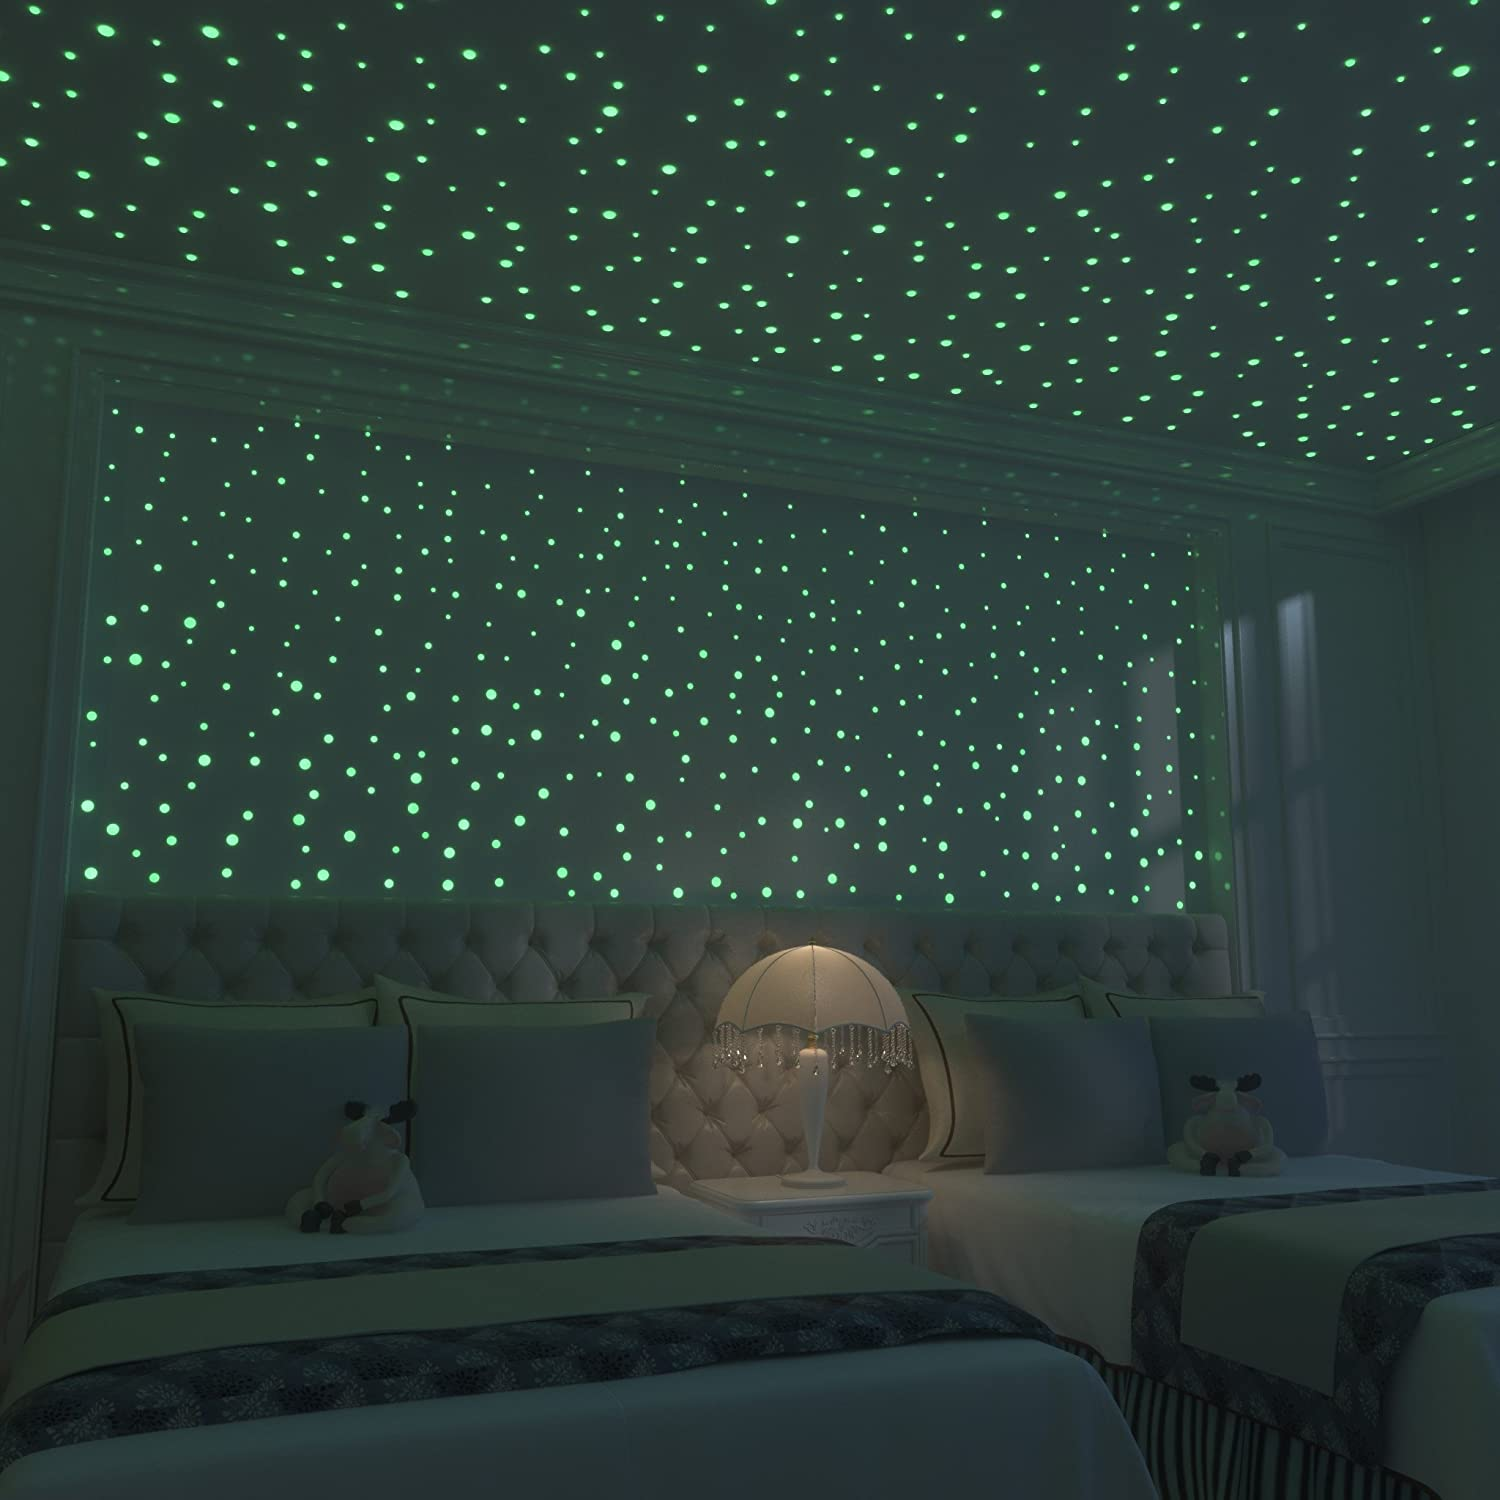 Amazon.com: Glow In The Dark Stars: 824 Realistic 3D Stars For ...